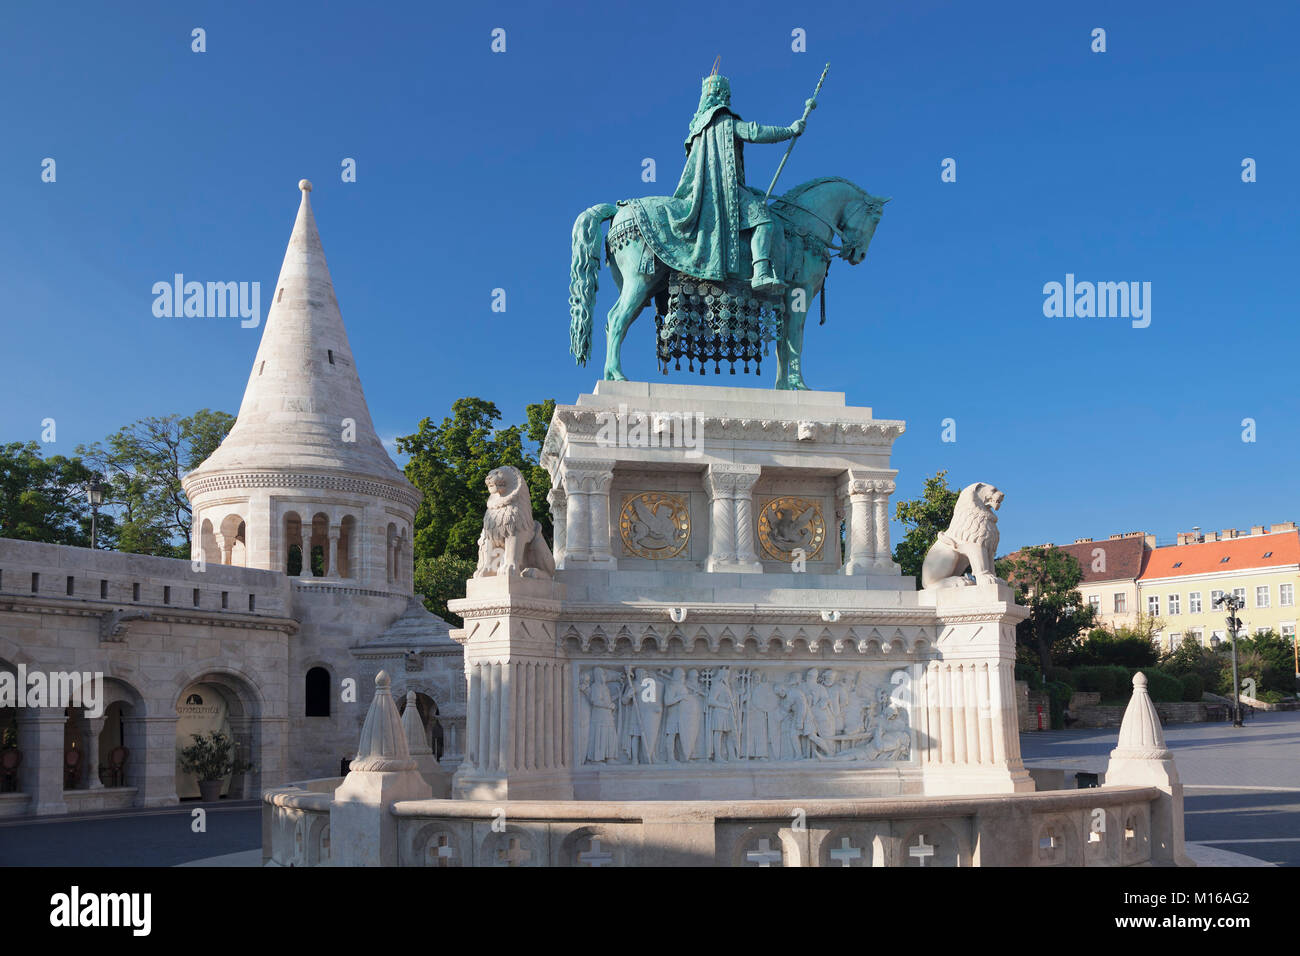 Portrait of King Stephan I, Fishermen's bastion at the castle hill of Buda, Budapest, Hungary Stock Photo